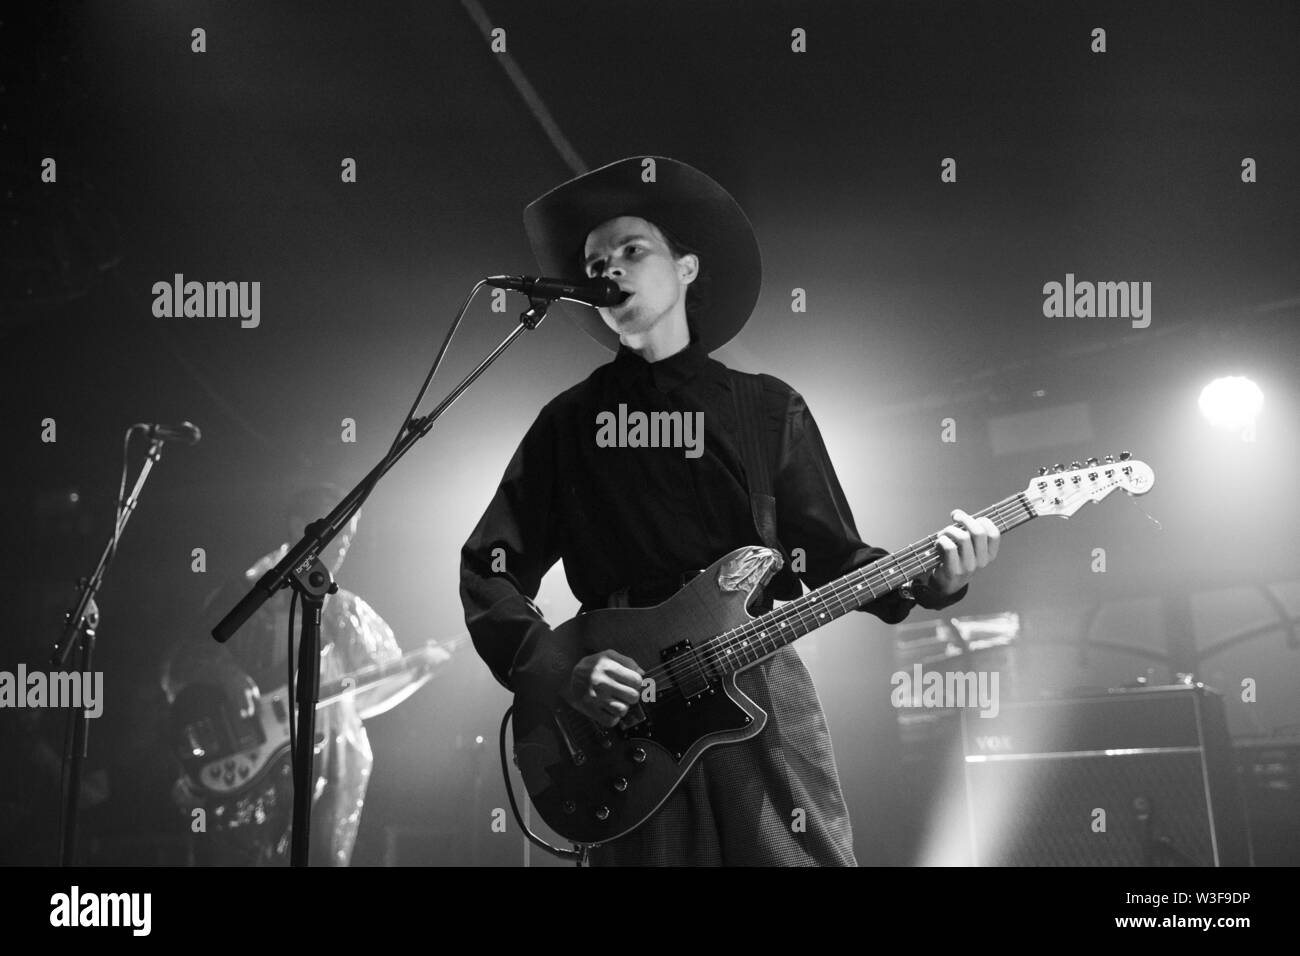 Bergen, Norway - June 15th, 2019. The British band Black Midi performs a live concert during the Norwegian music festival Bergenfest 2019 in Bergen. Here singer and guitarist Geordie Greep is seen live on stage. (Photo credit: Gonzales Photo - Jarle H. Moe). - Stock Image